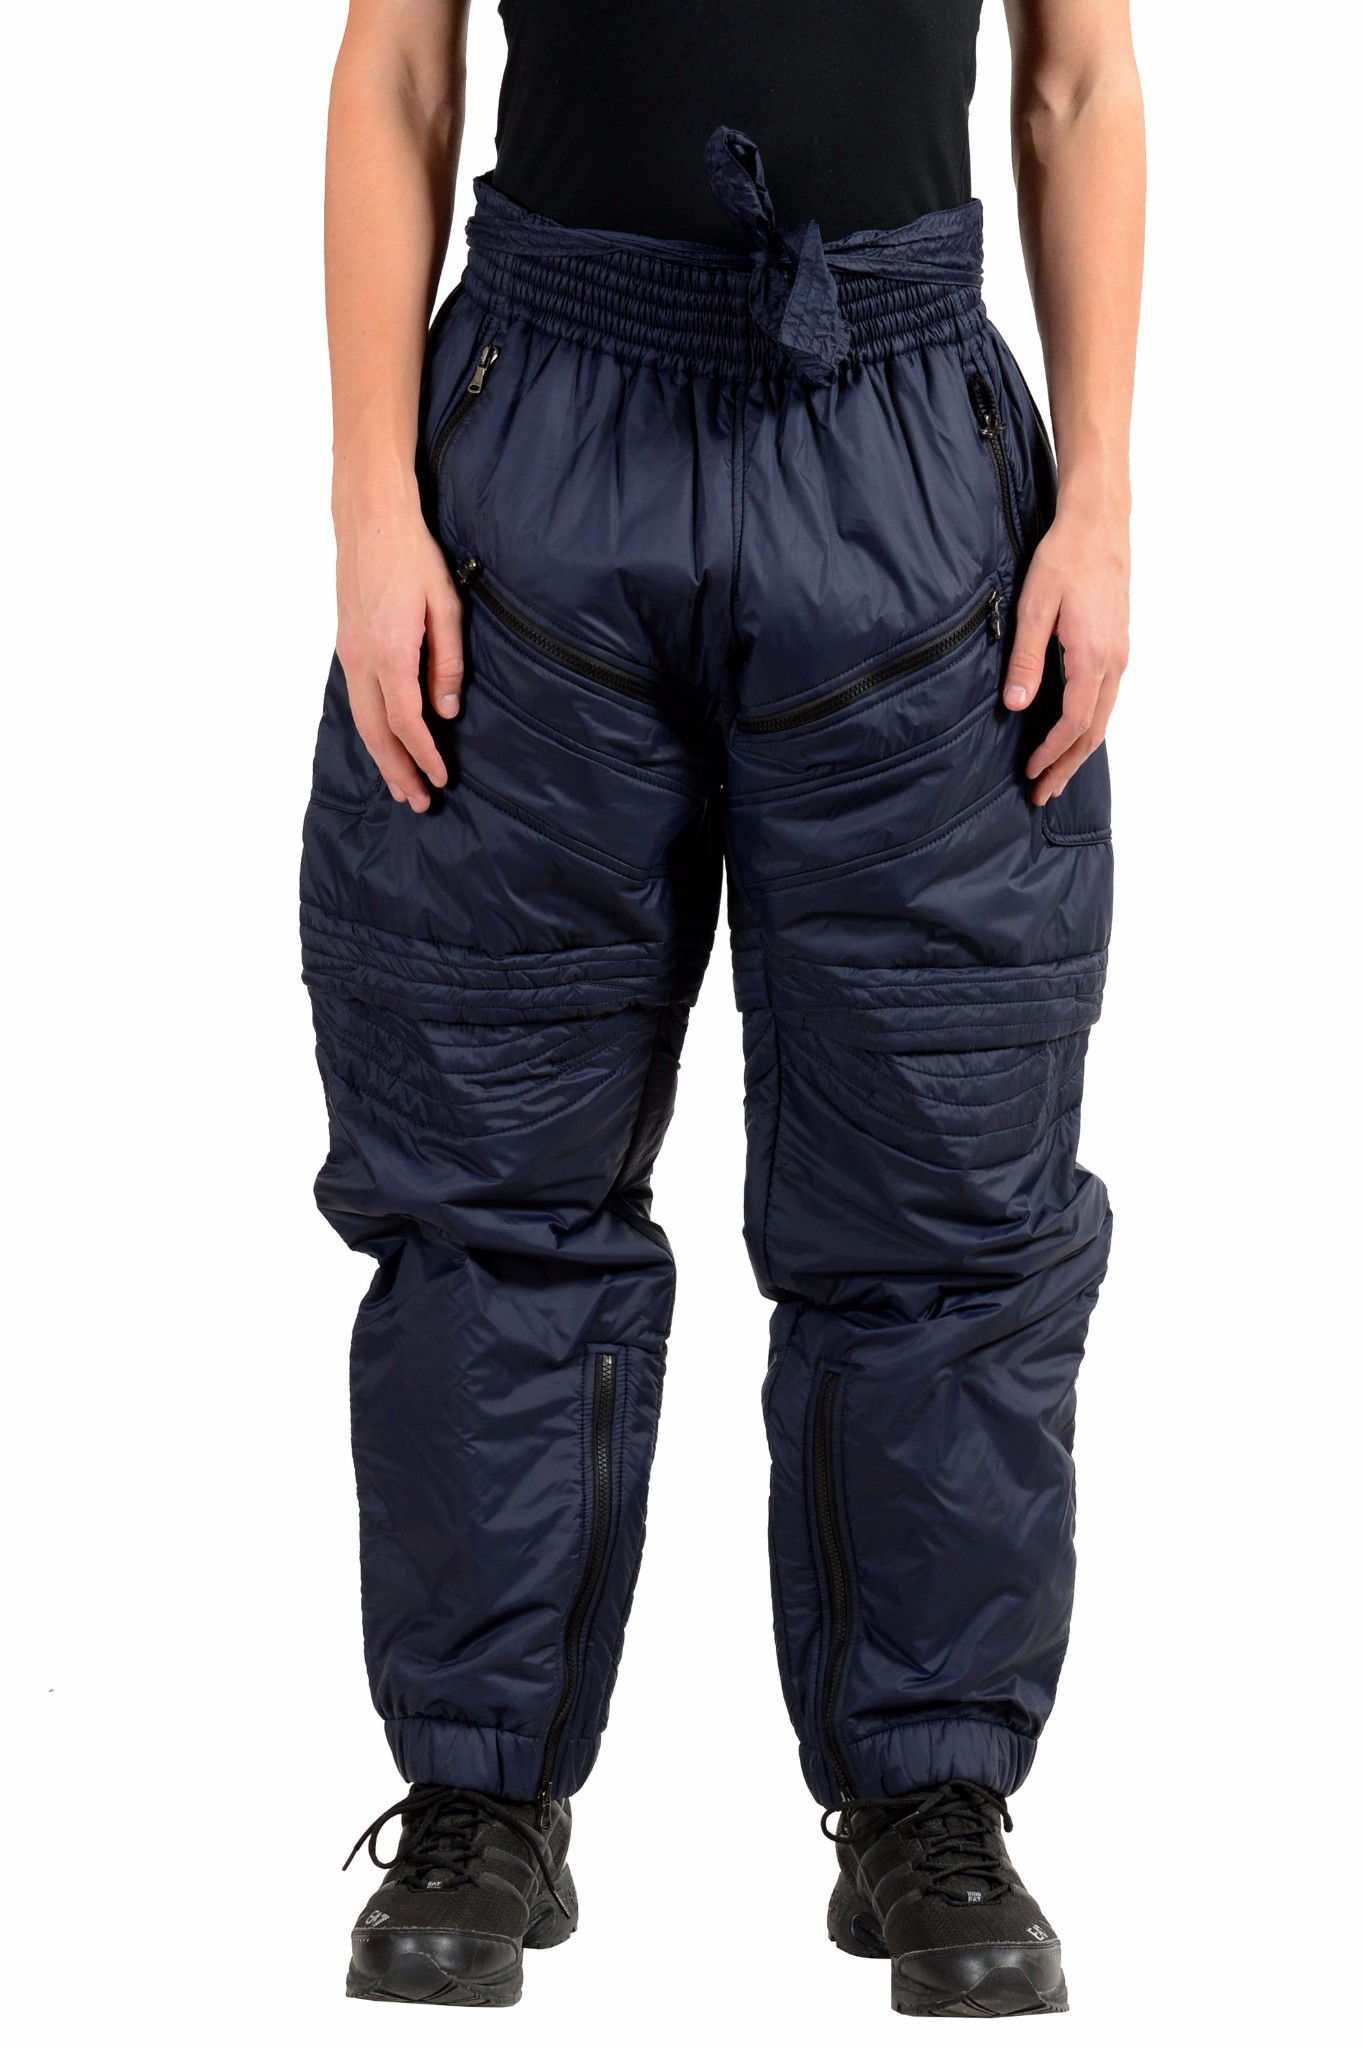 Dolce /& Gabbana D/&G Men/'s Brown Insulated Snow Pants Size 28 30 32 34